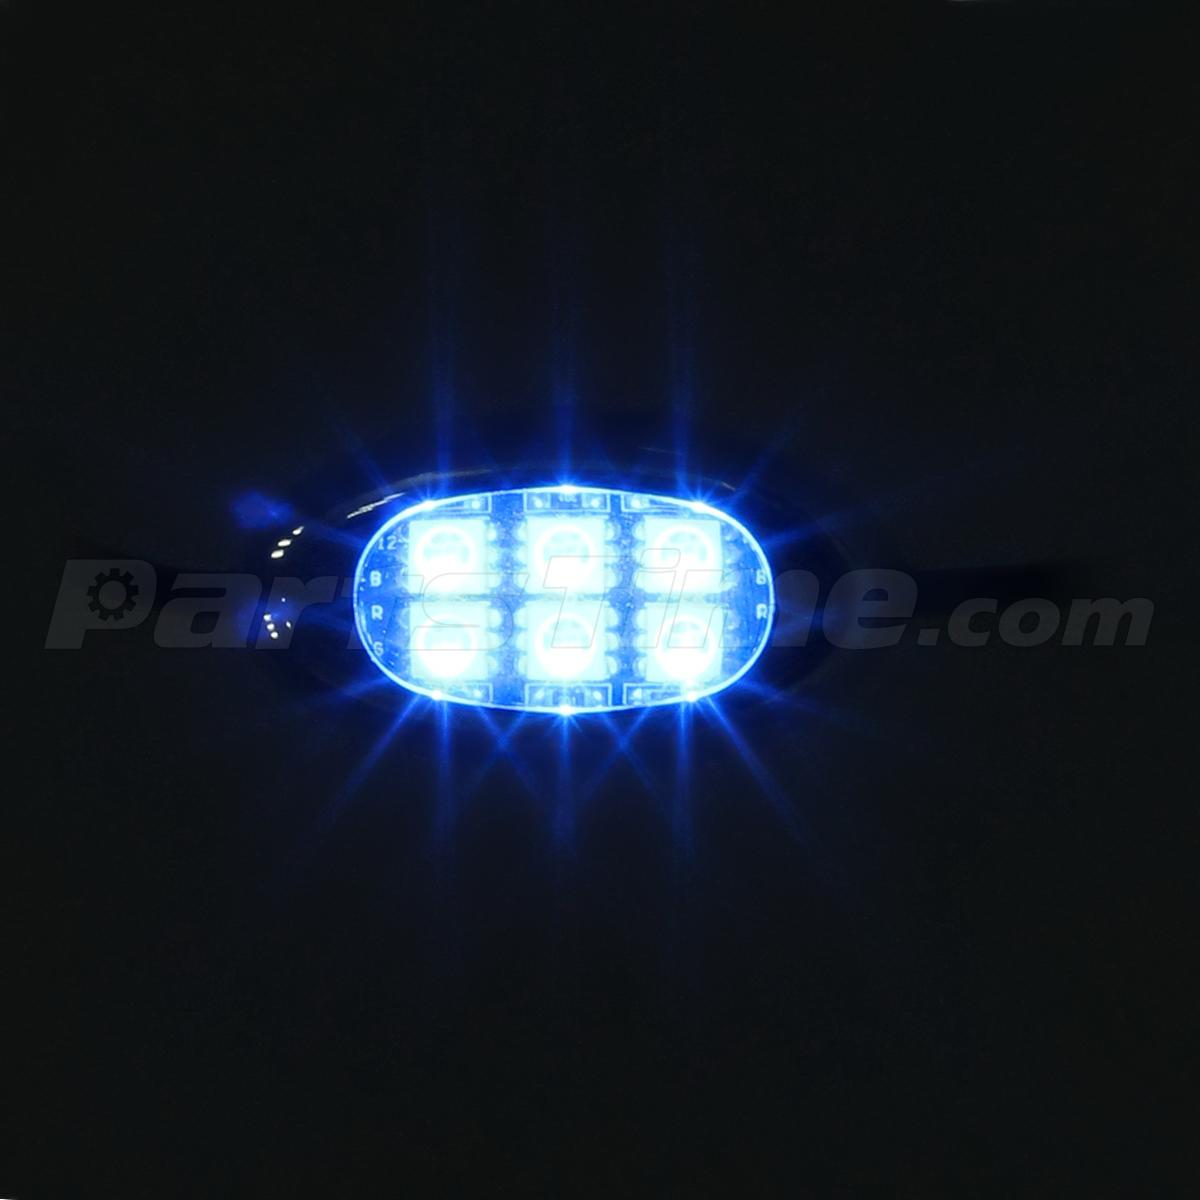 Blue 6 Pod Motorcycle 36 Led Underglow Neon Accent Bike Lighting Kit W Switch Ebay